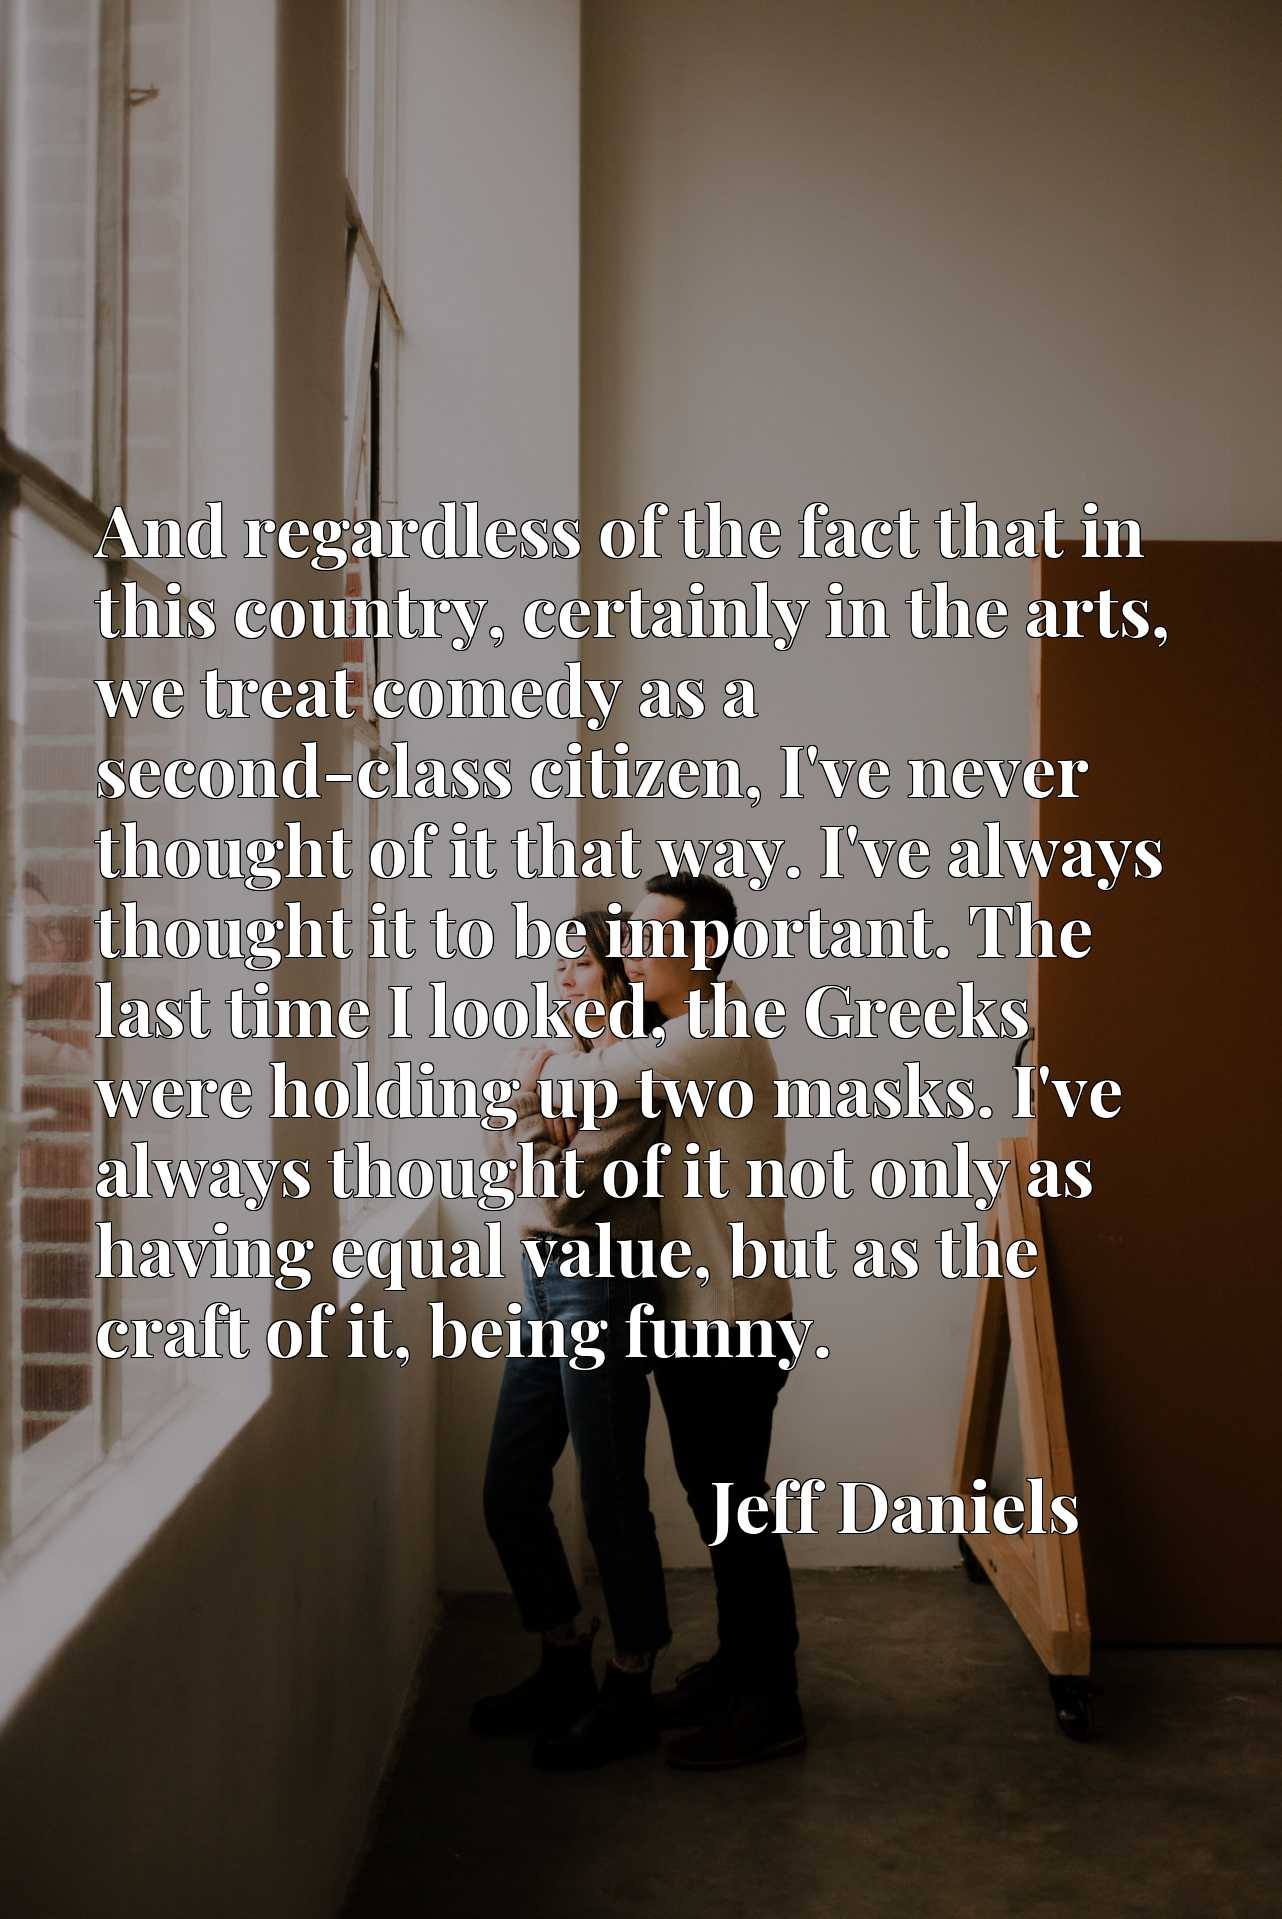 And regardless of the fact that in this country, certainly in the arts, we treat comedy as a second-class citizen, I've never thought of it that way. I've always thought it to be important. The last time I looked, the Greeks were holding up two masks. I've always thought of it not only as having equal value, but as the craft of it, being funny.